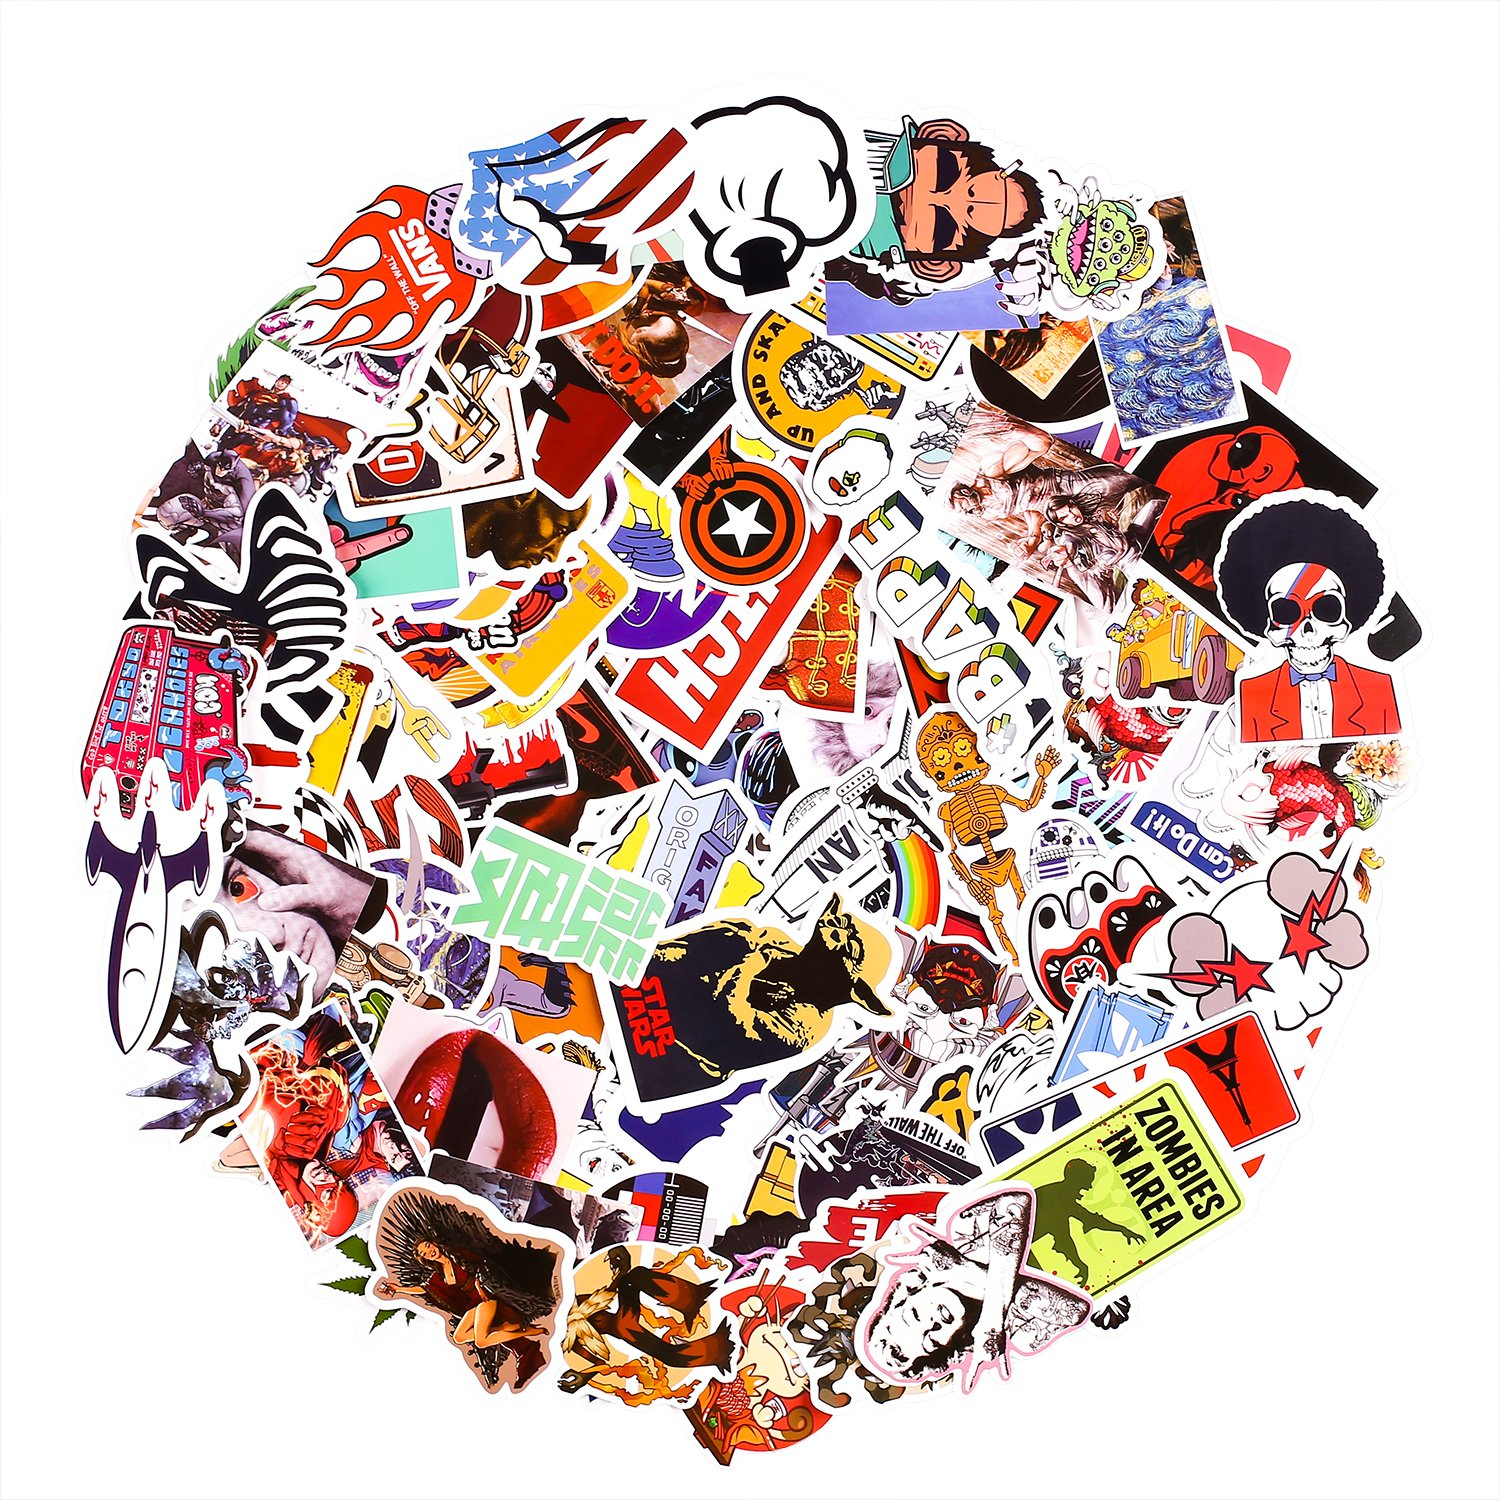 Laptop Stickers [200 pcs], Breezypals Car Stickers Motorcycle Bicycle Luggage Decal Graffiti Patches Skateboard Stickers for Laptop - No-Duplicate Sticker Pack